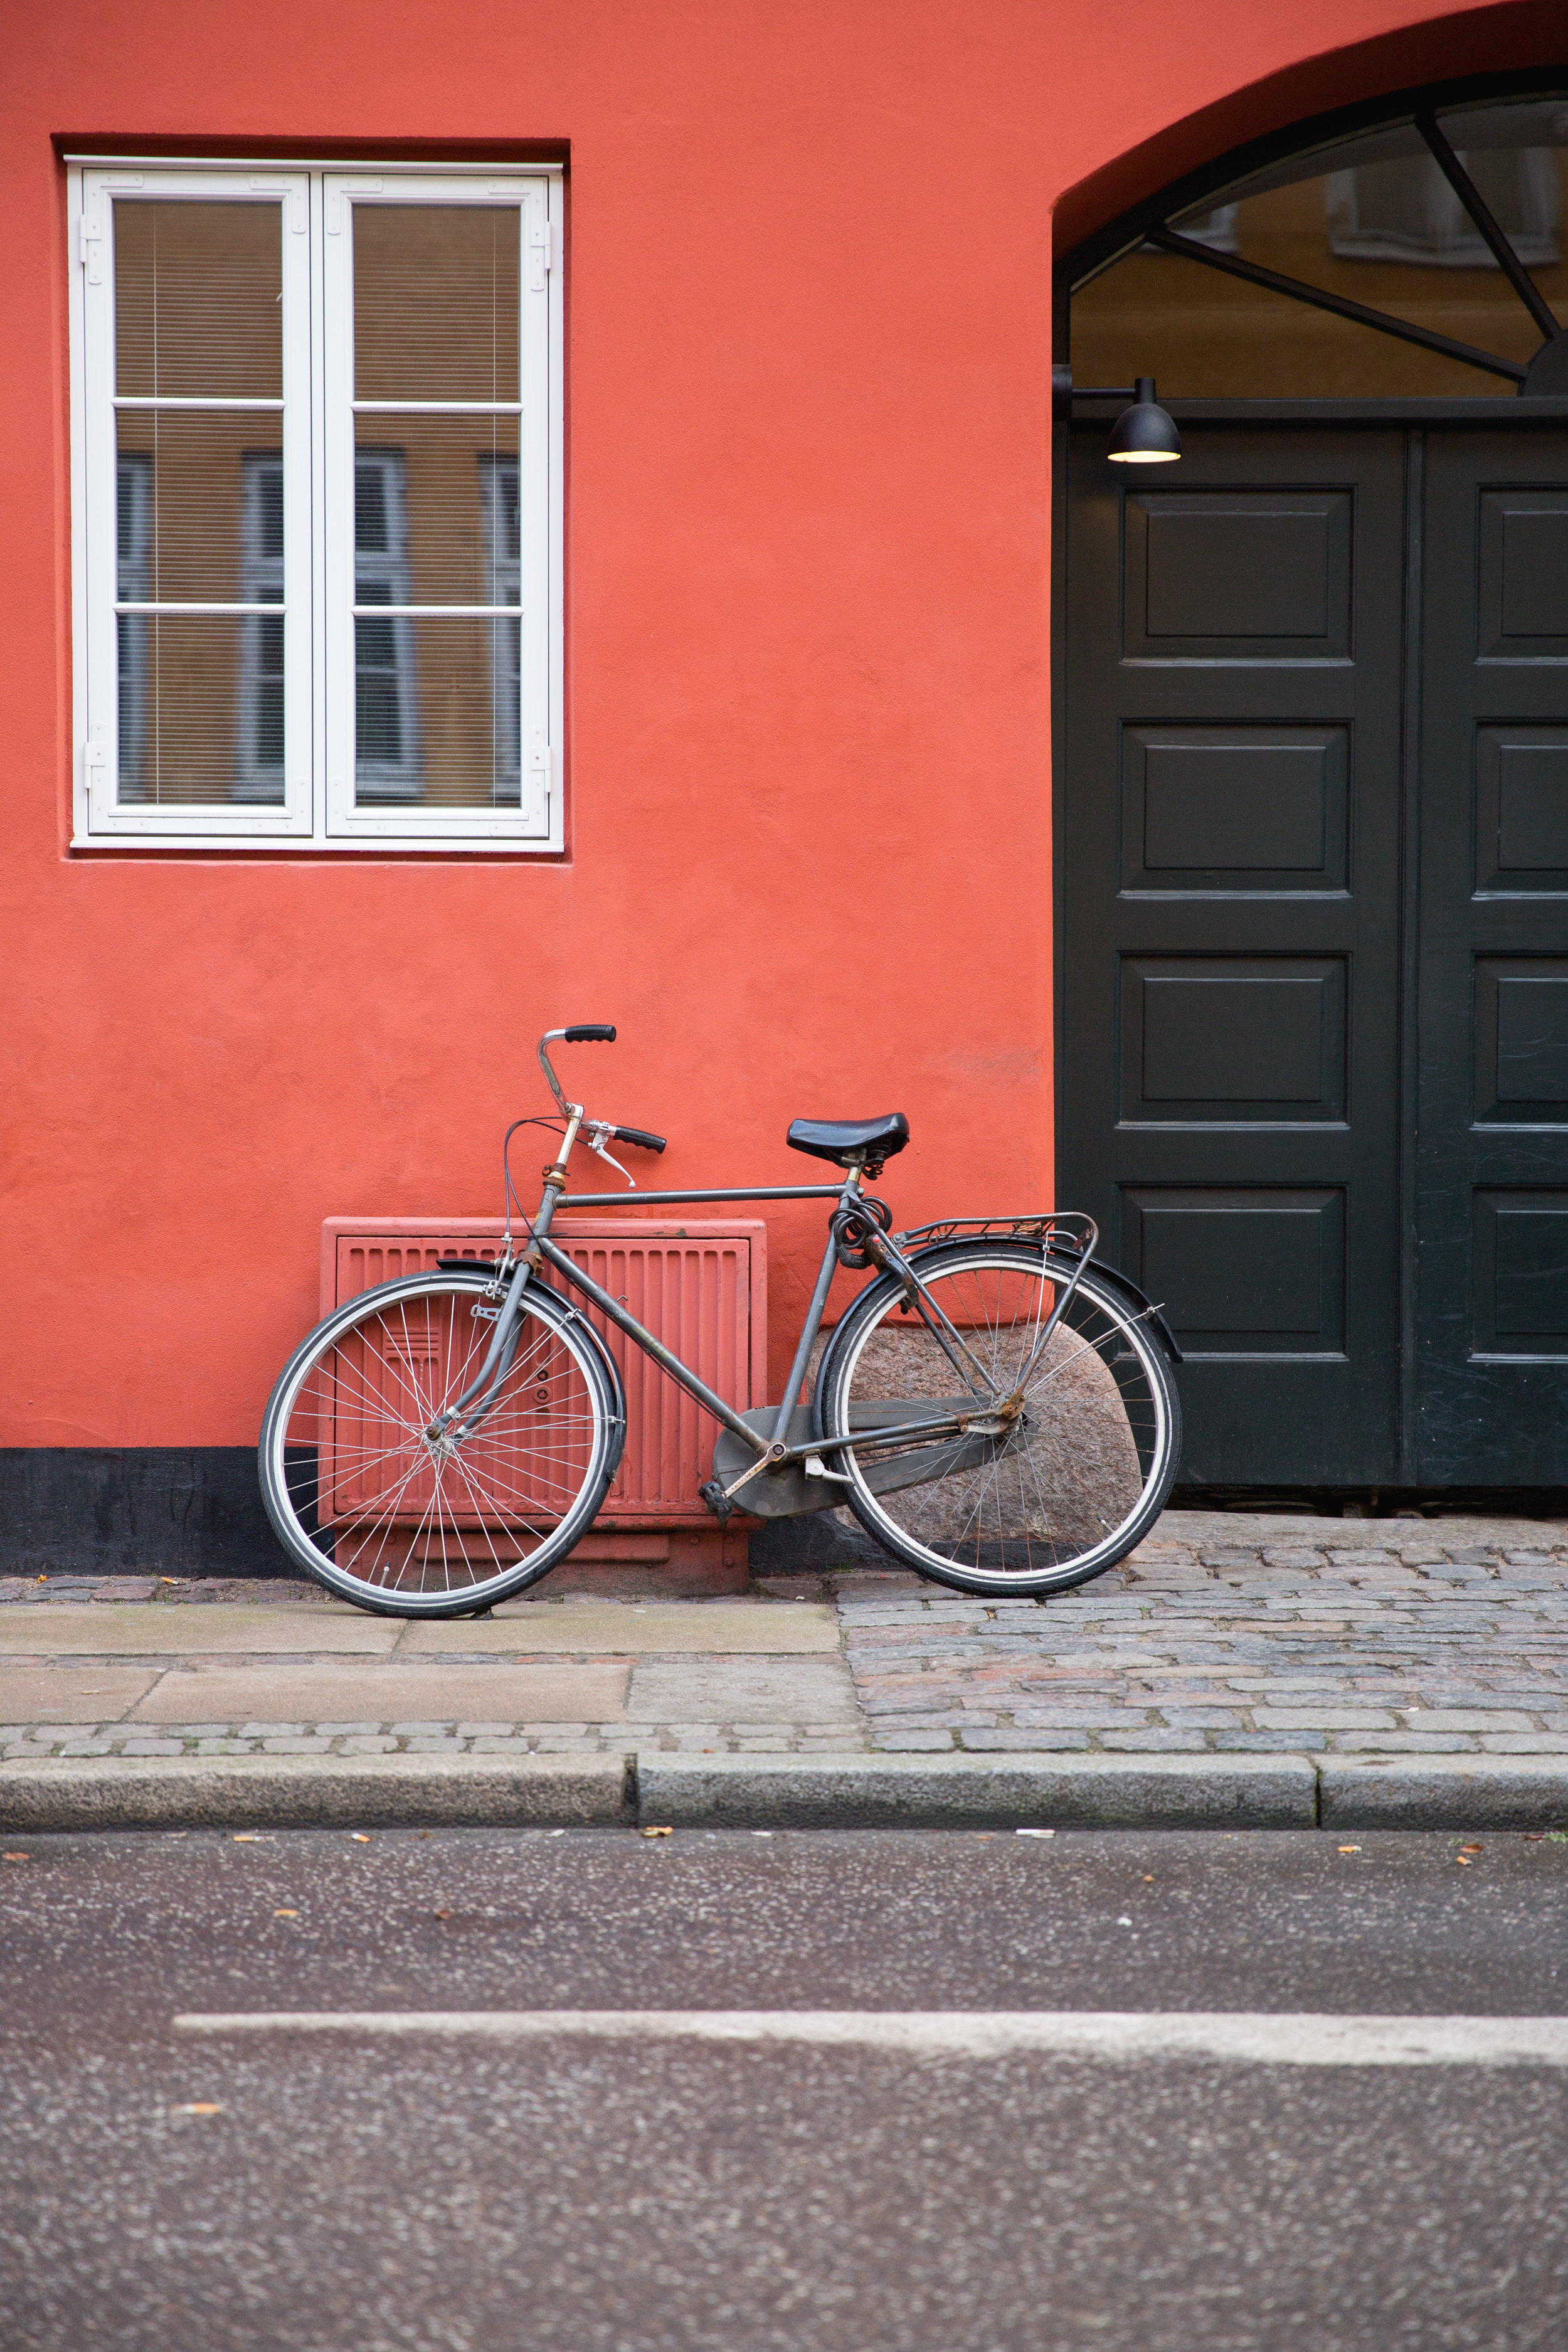 10 Facts About Denmark article. Image of bike leant against a building in Copenhagen.jpg